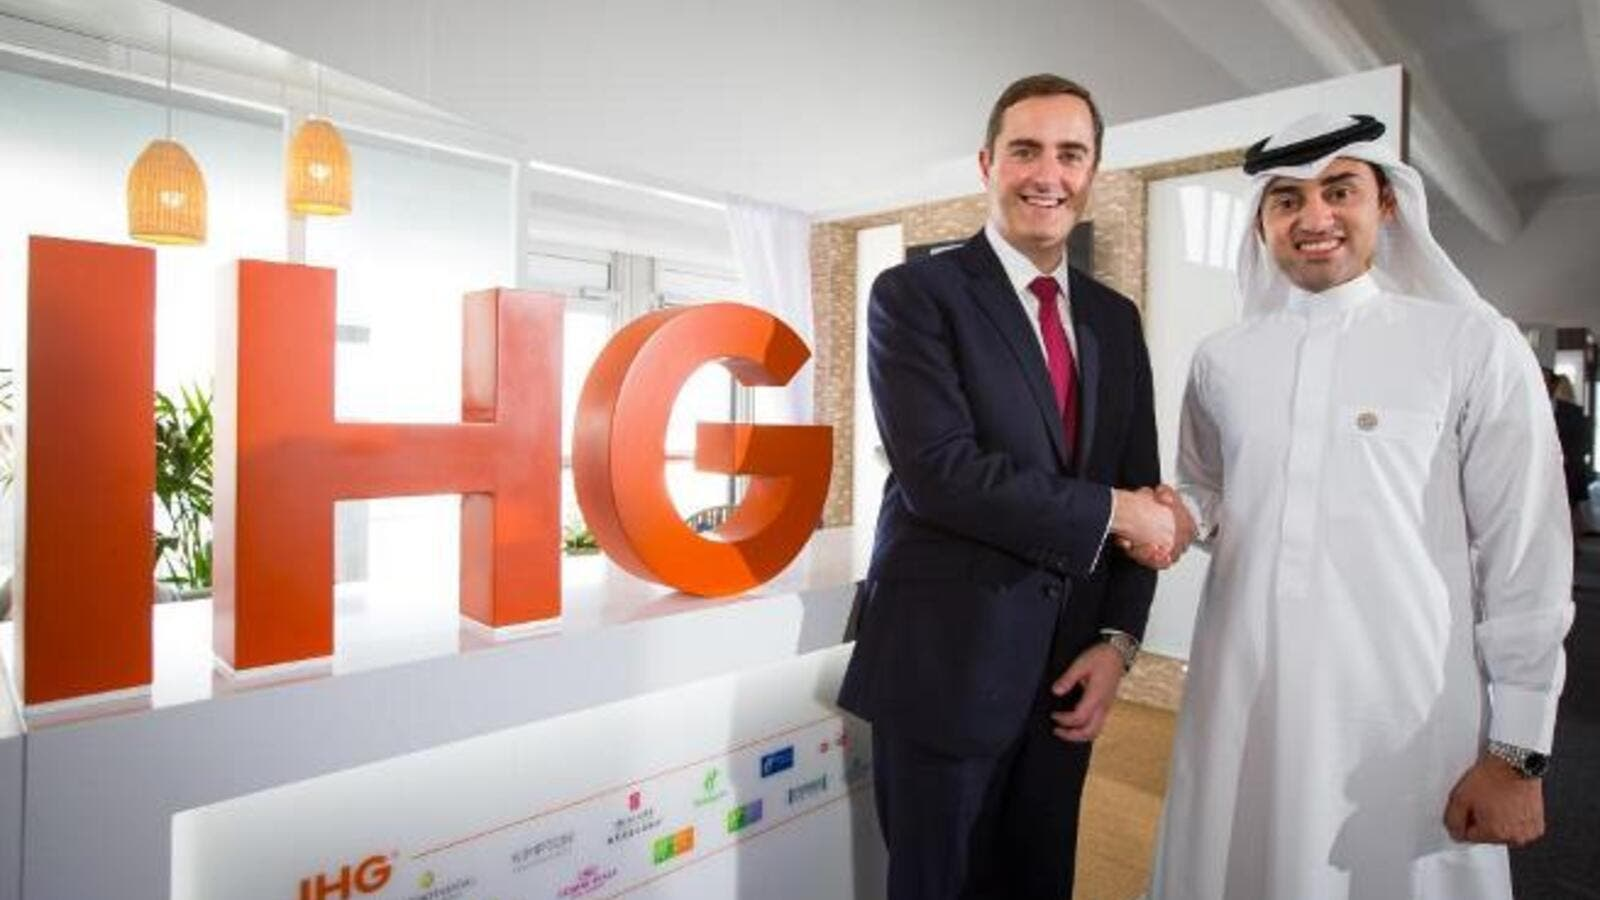 Pascal Gauvin and Sami Alhokair shake hands after signing the agreement. (Courtesy of IHG)